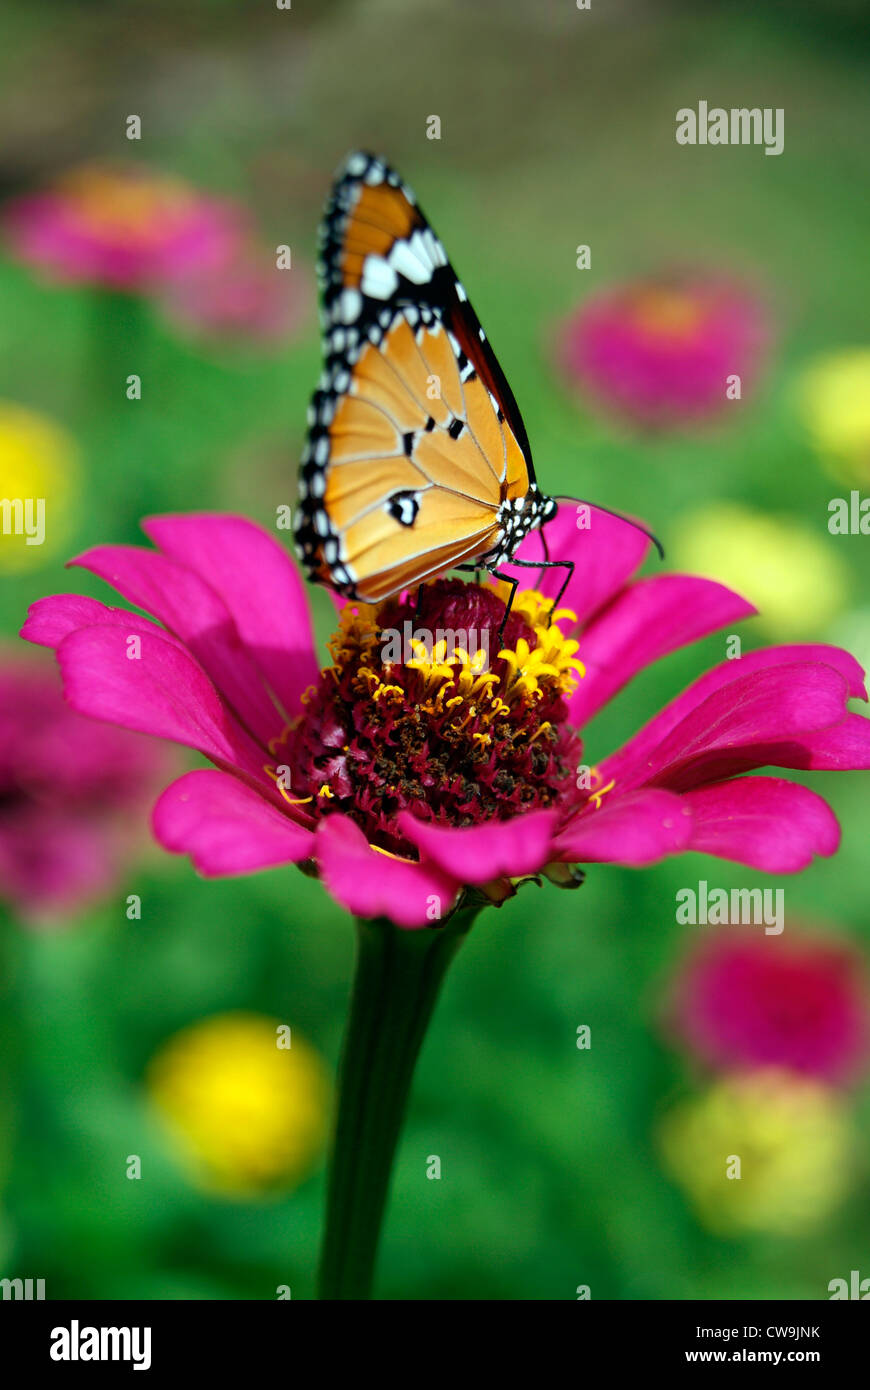 Butterfly Sitting And Sucking Honey From Violet Color Dahlia Flower Among  Lot Of Flowers In Garden Closeup View Kerala,India